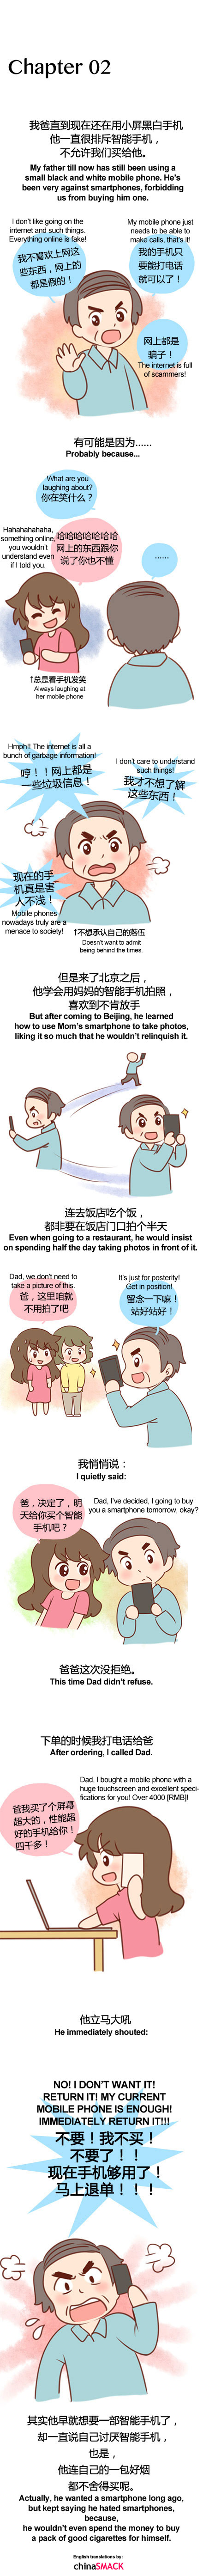 chinese-comic-greatanny-parents-visit-02-english-translation